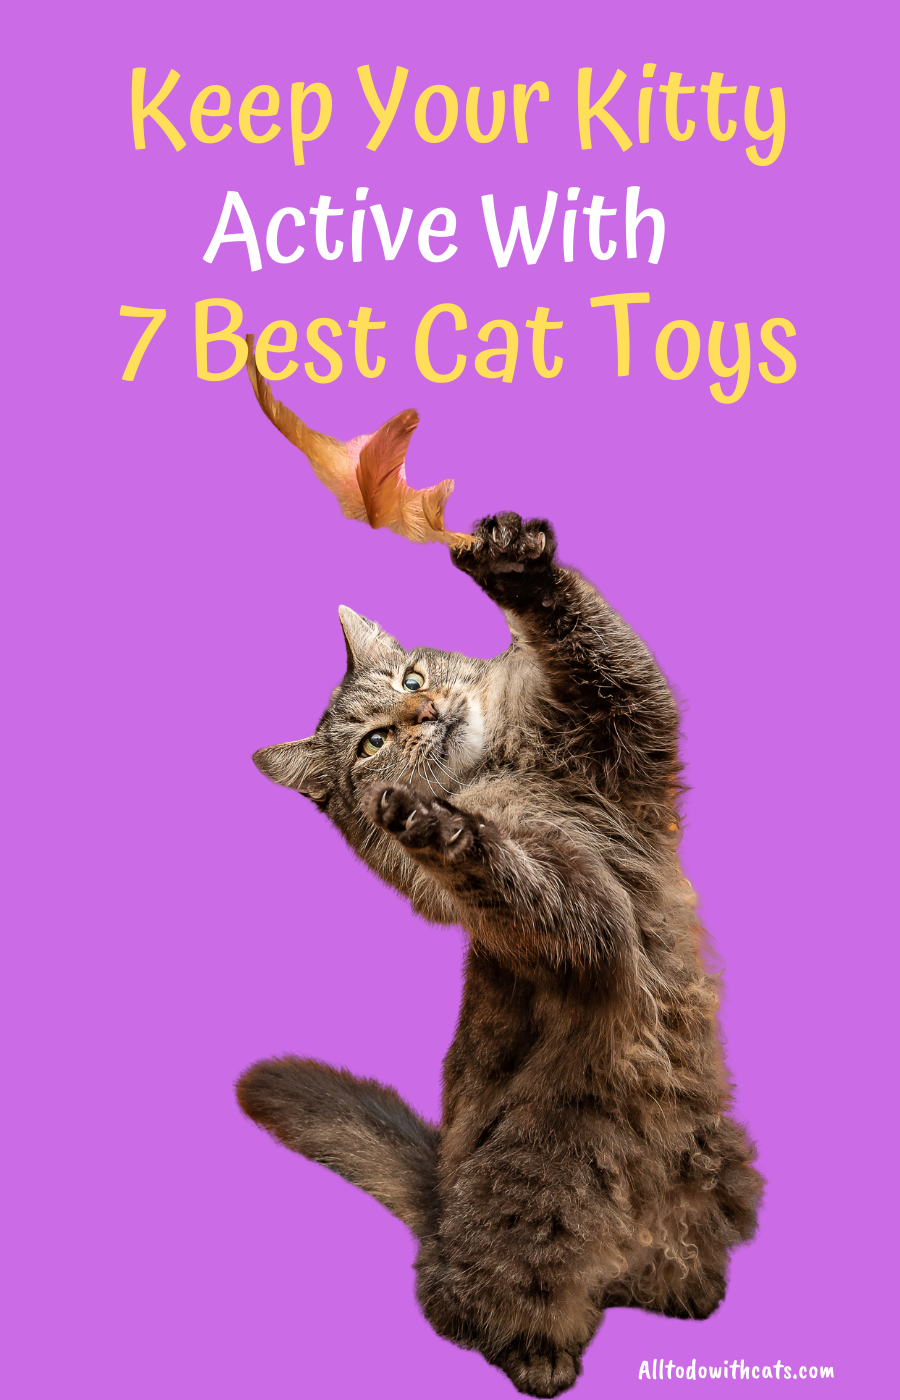 7 Best Cat Toys For Indoor Cats To Keep Your Kitty Active All To Do With Cats Cat Toys Cool Cats Indoor Cat